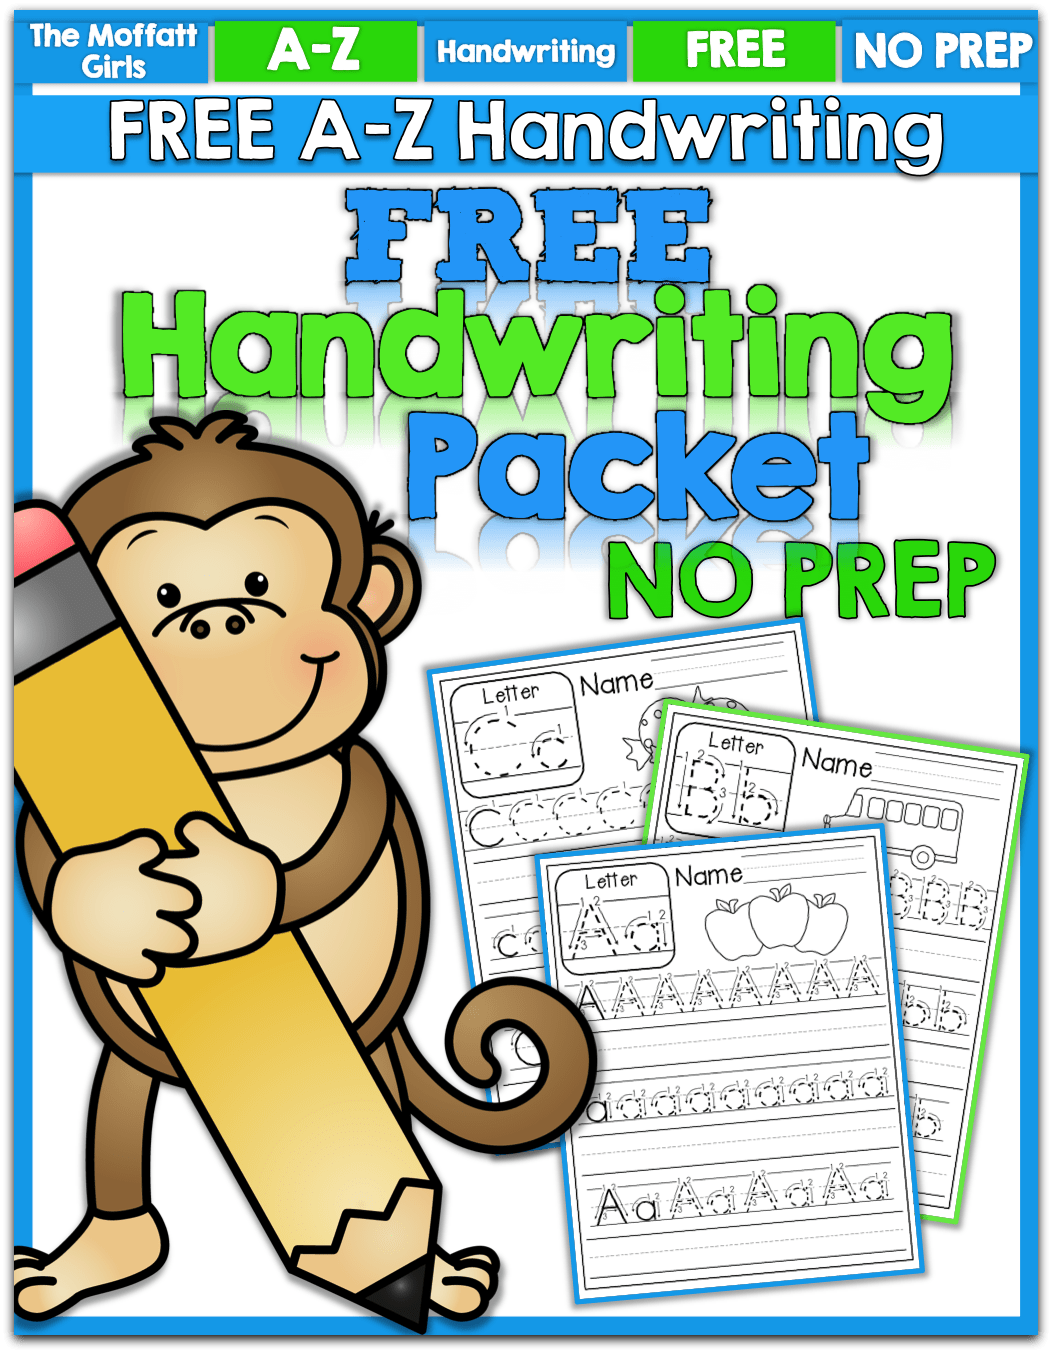 Freebie A Z Handwriting Practice Pages Just Print And Place In Sleeve Protectors